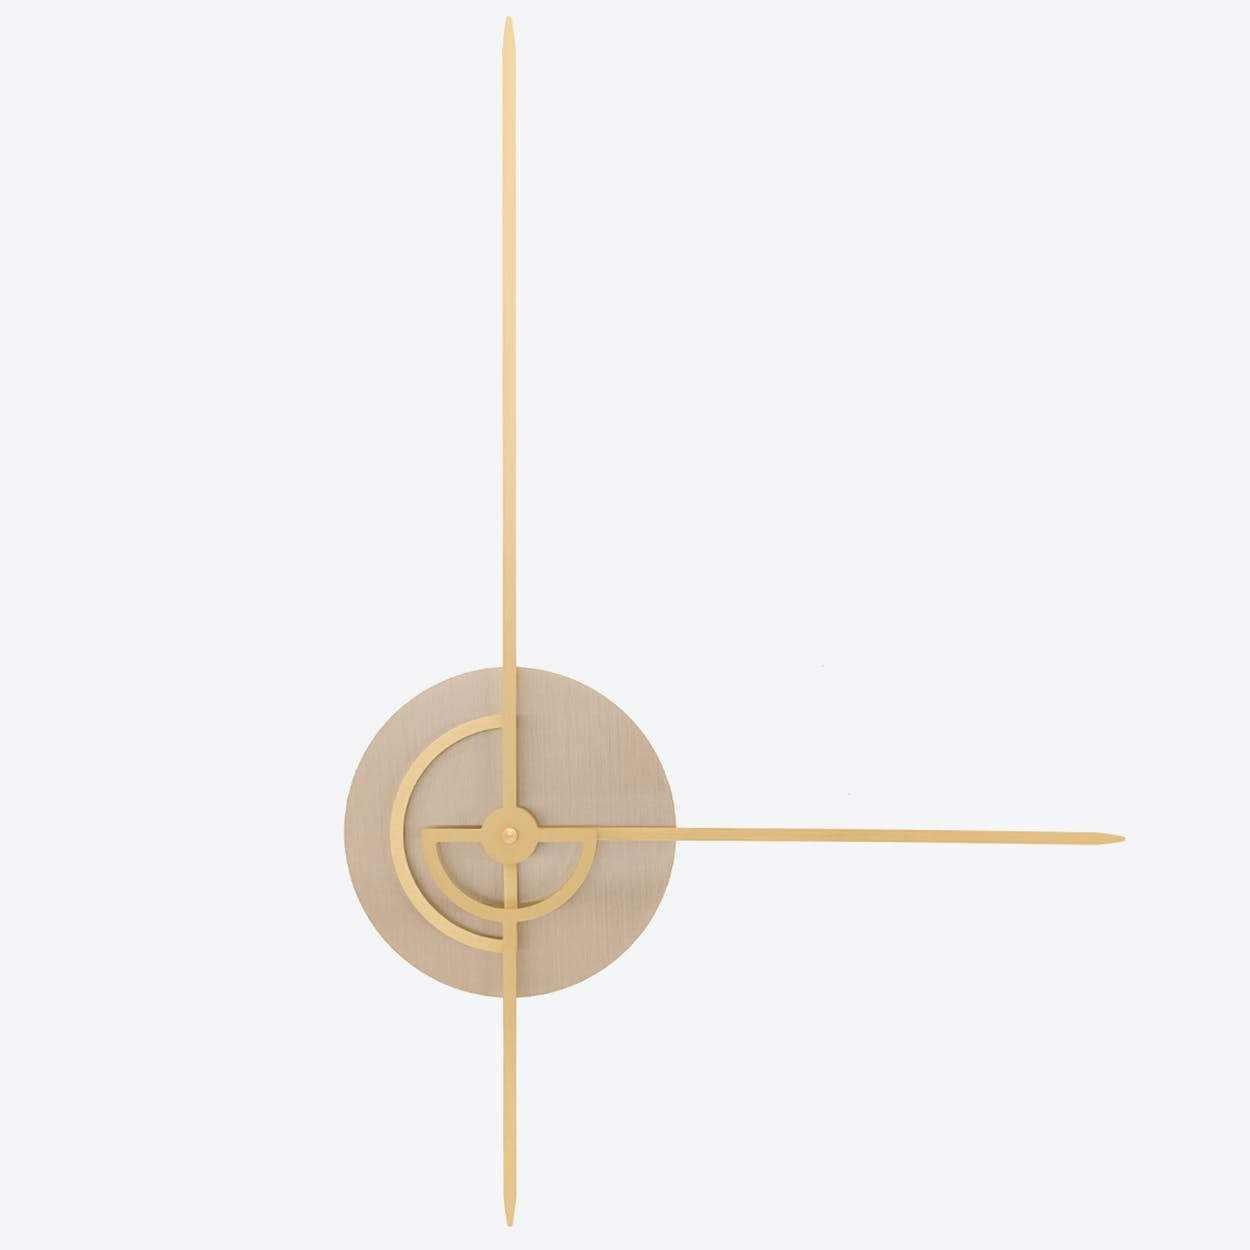 Phei Wall Clock - Stainless Steel & Brass